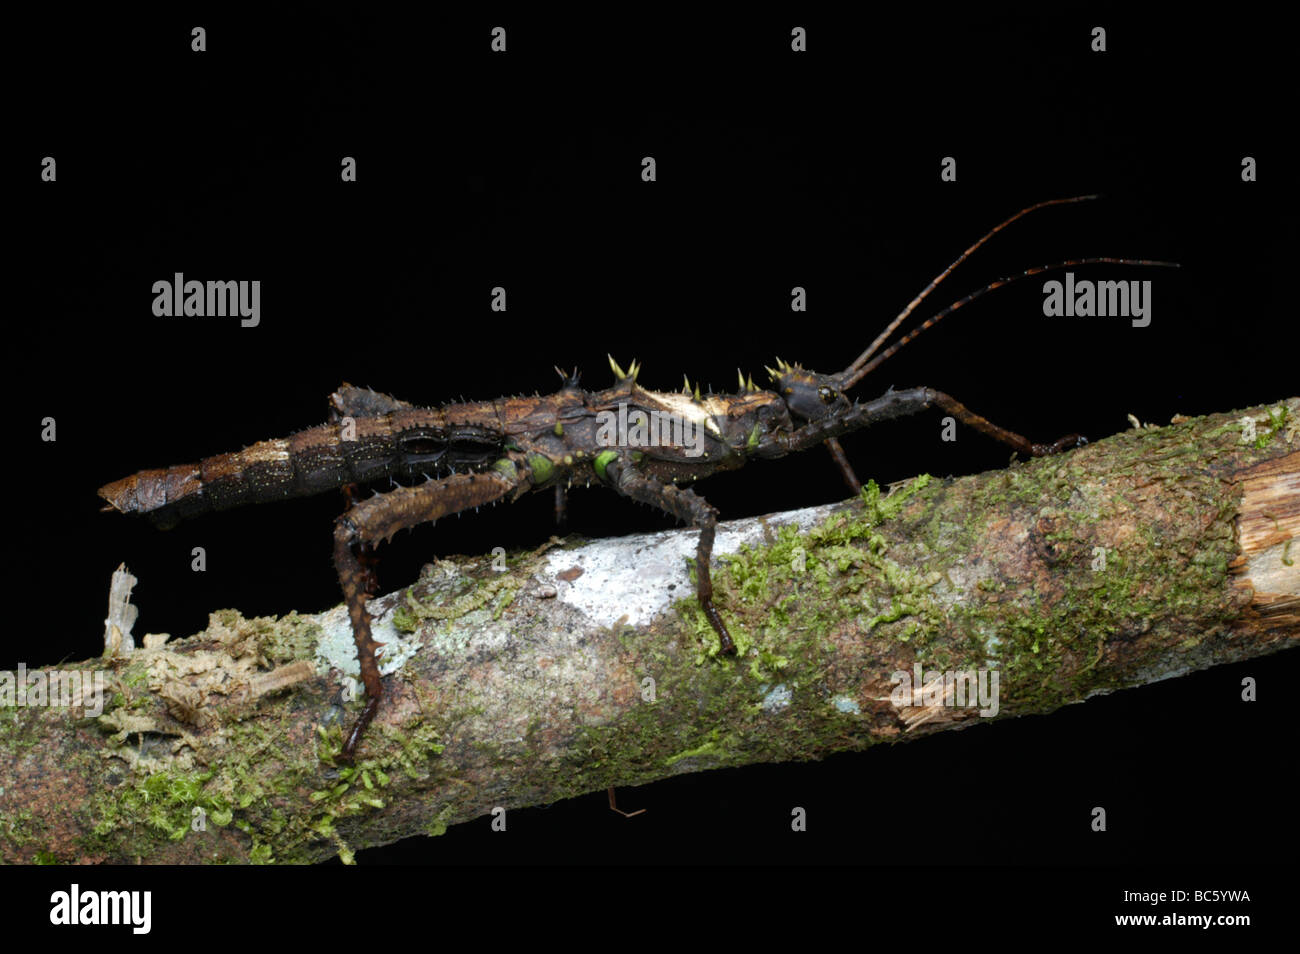 Stick Insect climbing a branch - Stock Image